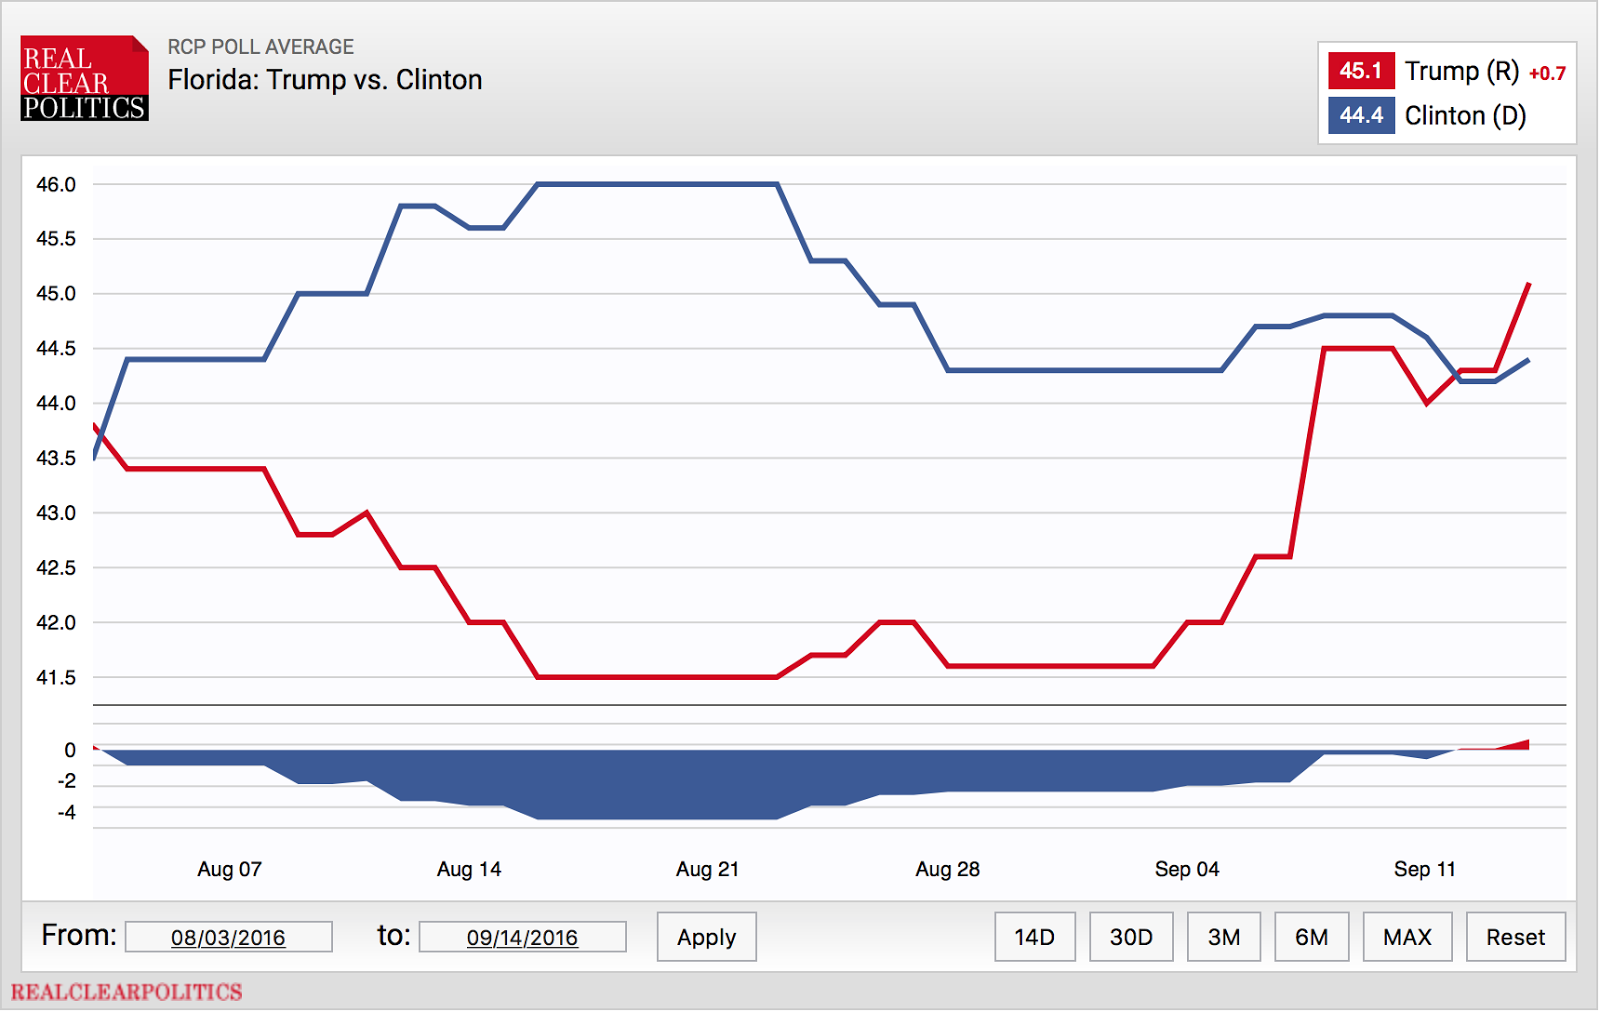 from real clear politics since august 3 2016 until a swift rise in the polls for trump on august 3 2016 that surpassed clinton on september 12 2016